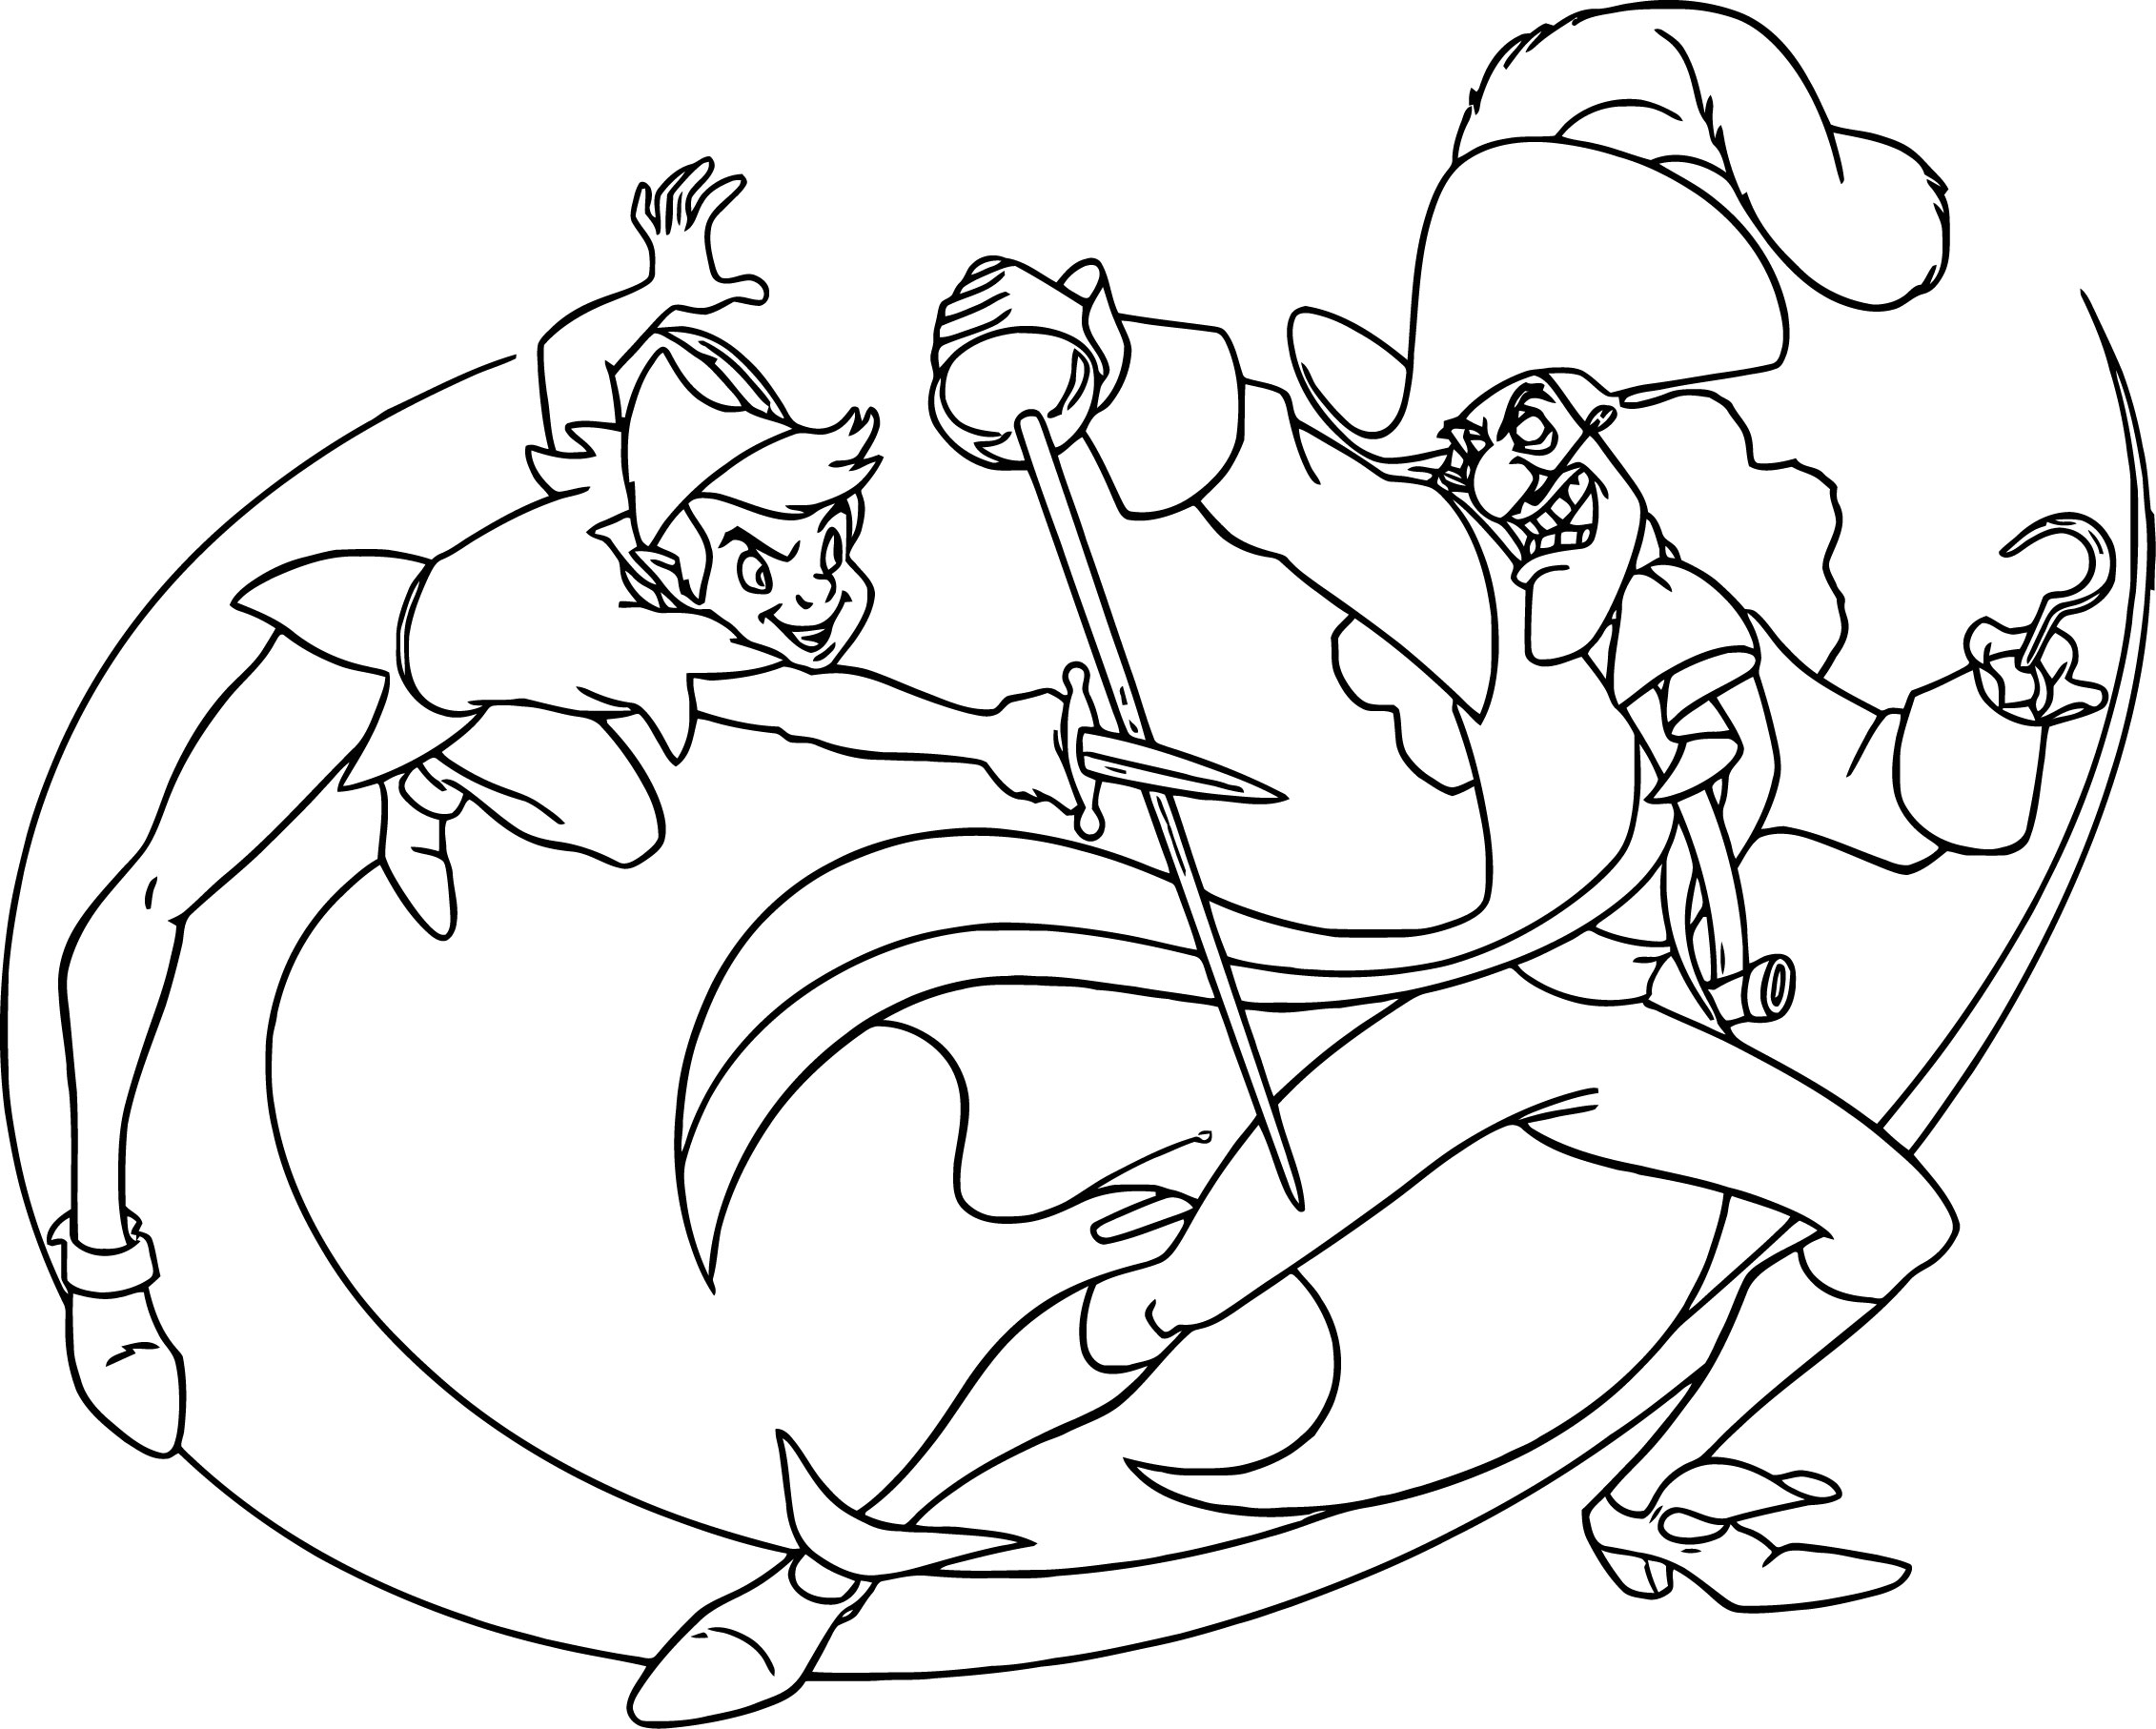 Uncategorized Peter Pan Coloring peter pan and captain hook coloring pages wecoloringpage pages